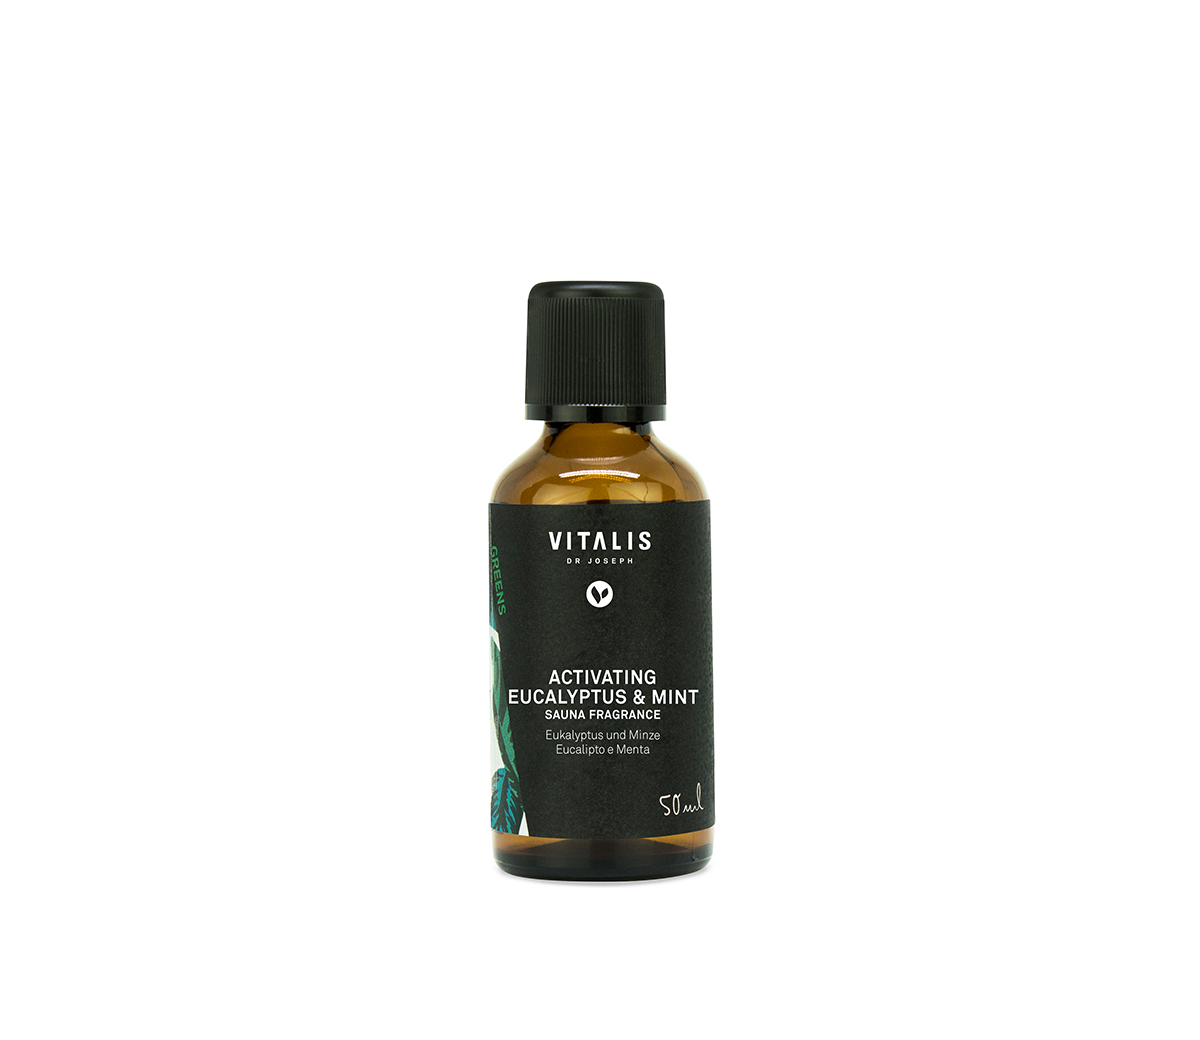 ACTIVATING EUCALYPTUS & MINT SAUNA FRAGRANCE, 50ml